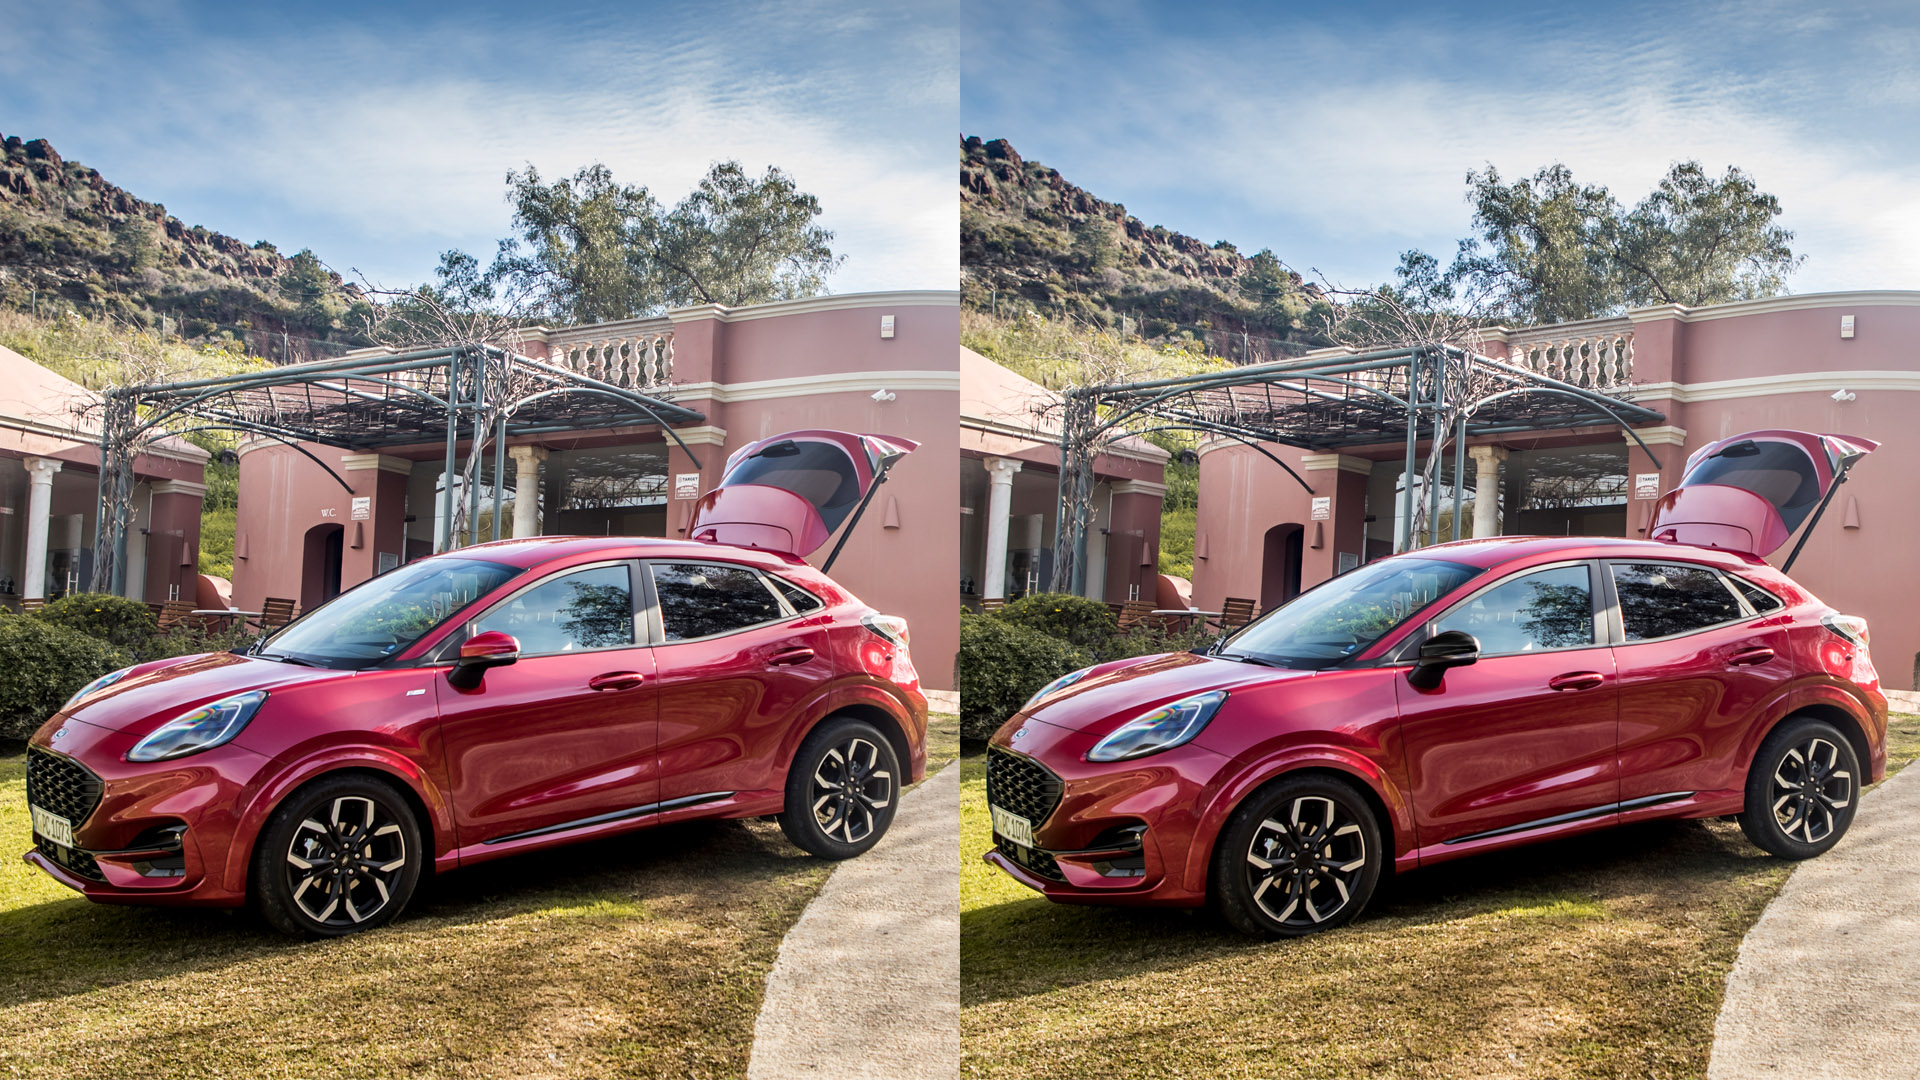 Ford Stay Home Puma spot the difference game